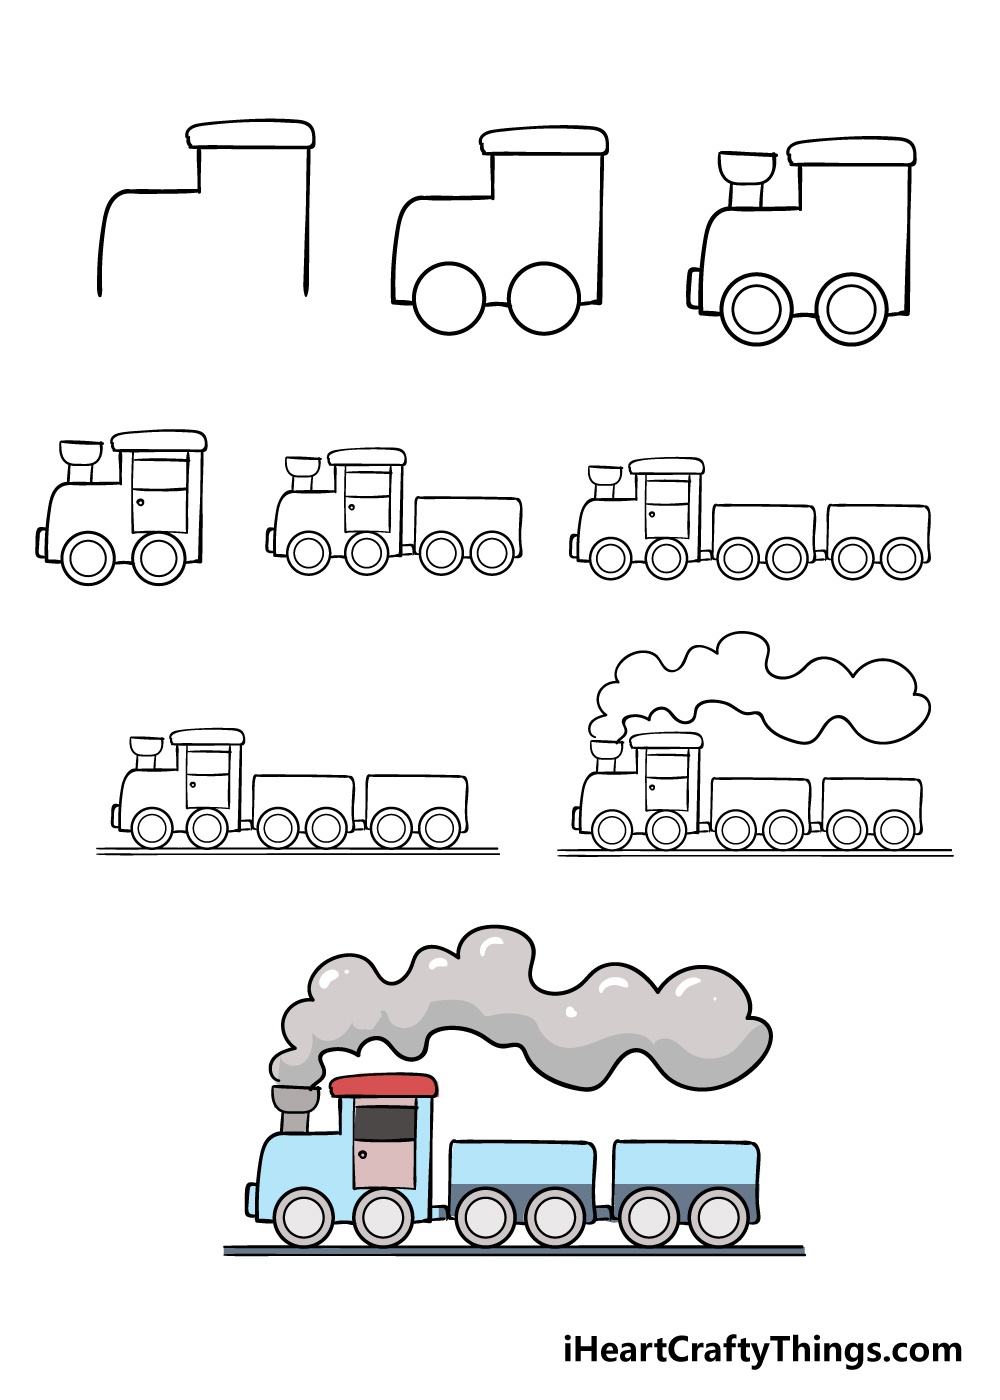 how to draw train in 9 steps